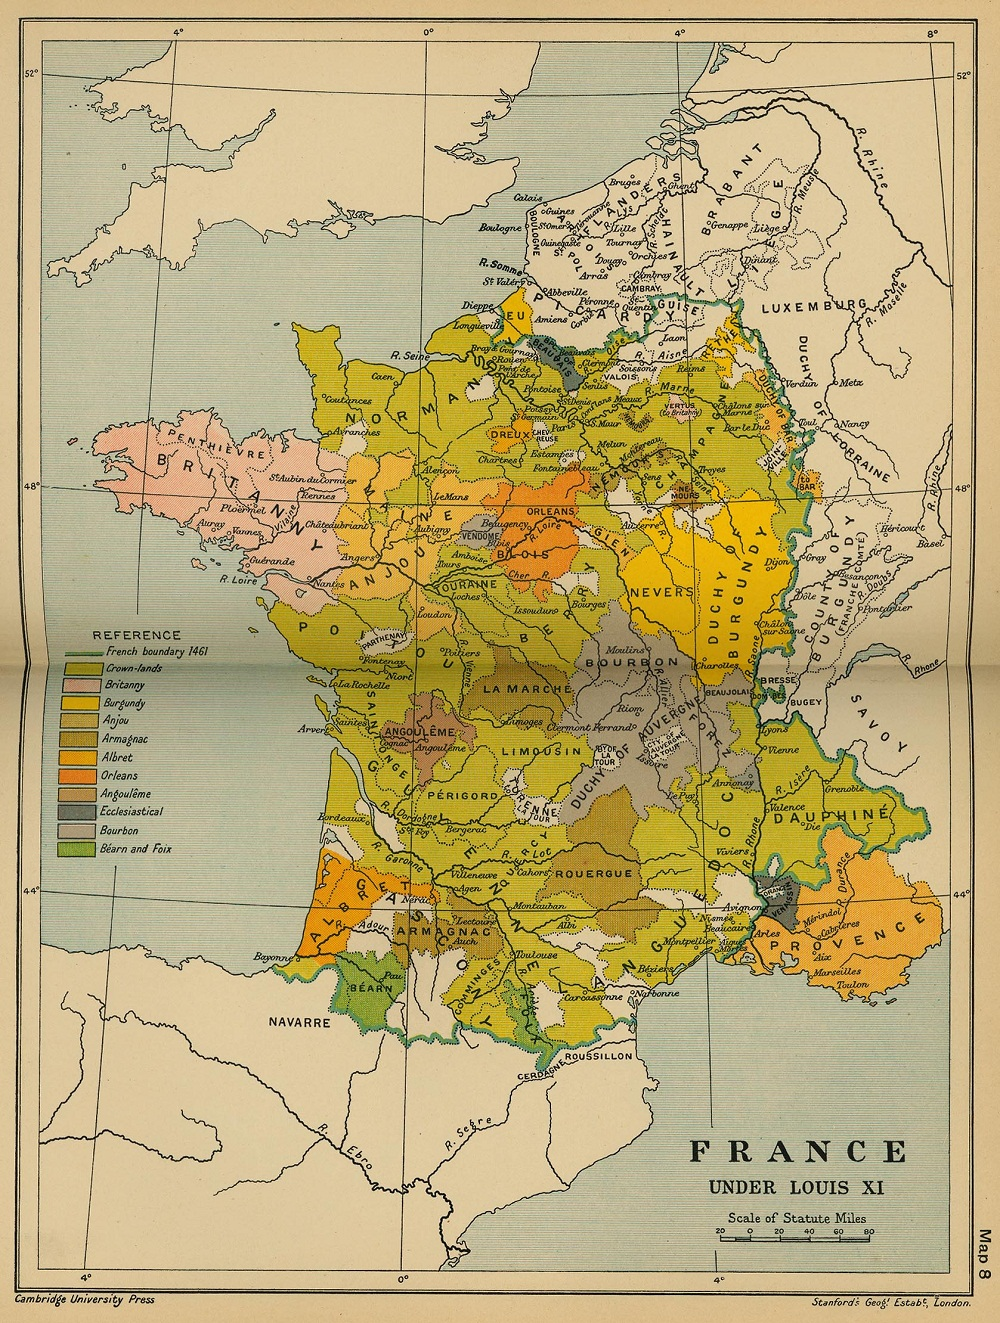 France-sous-louis-XI-royaume-de-France-en-1461